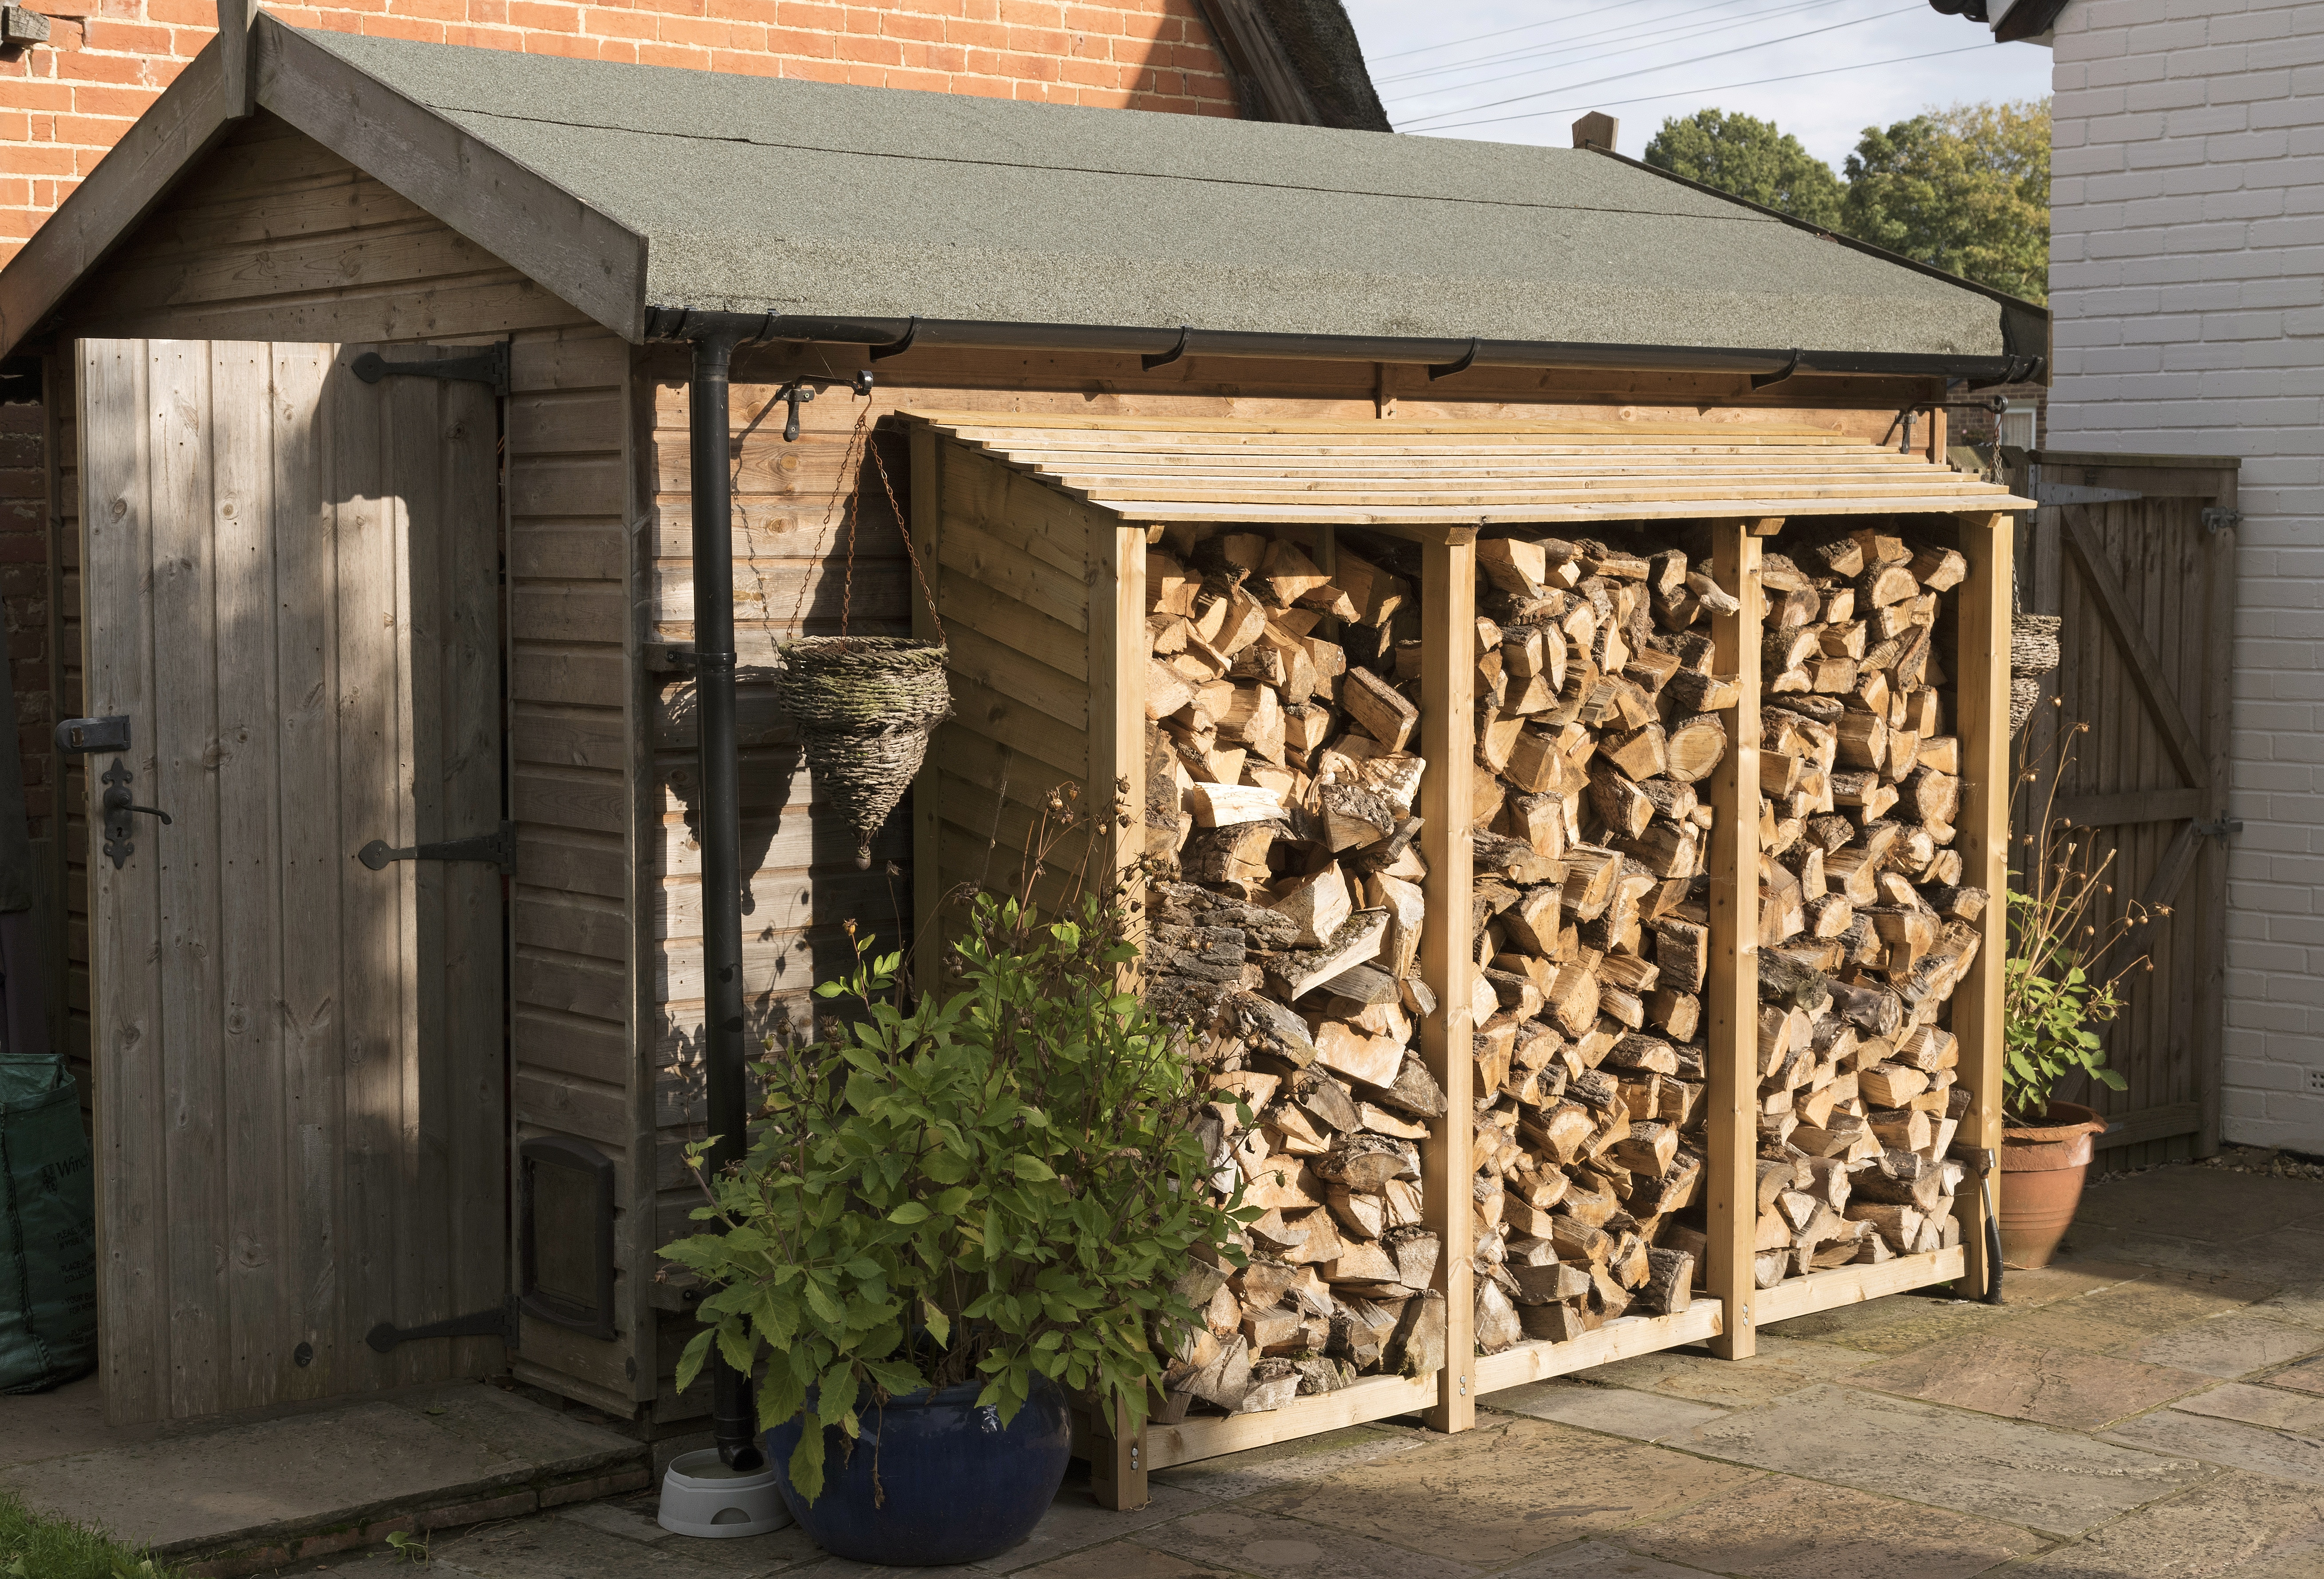 Log store standing against a garden shed